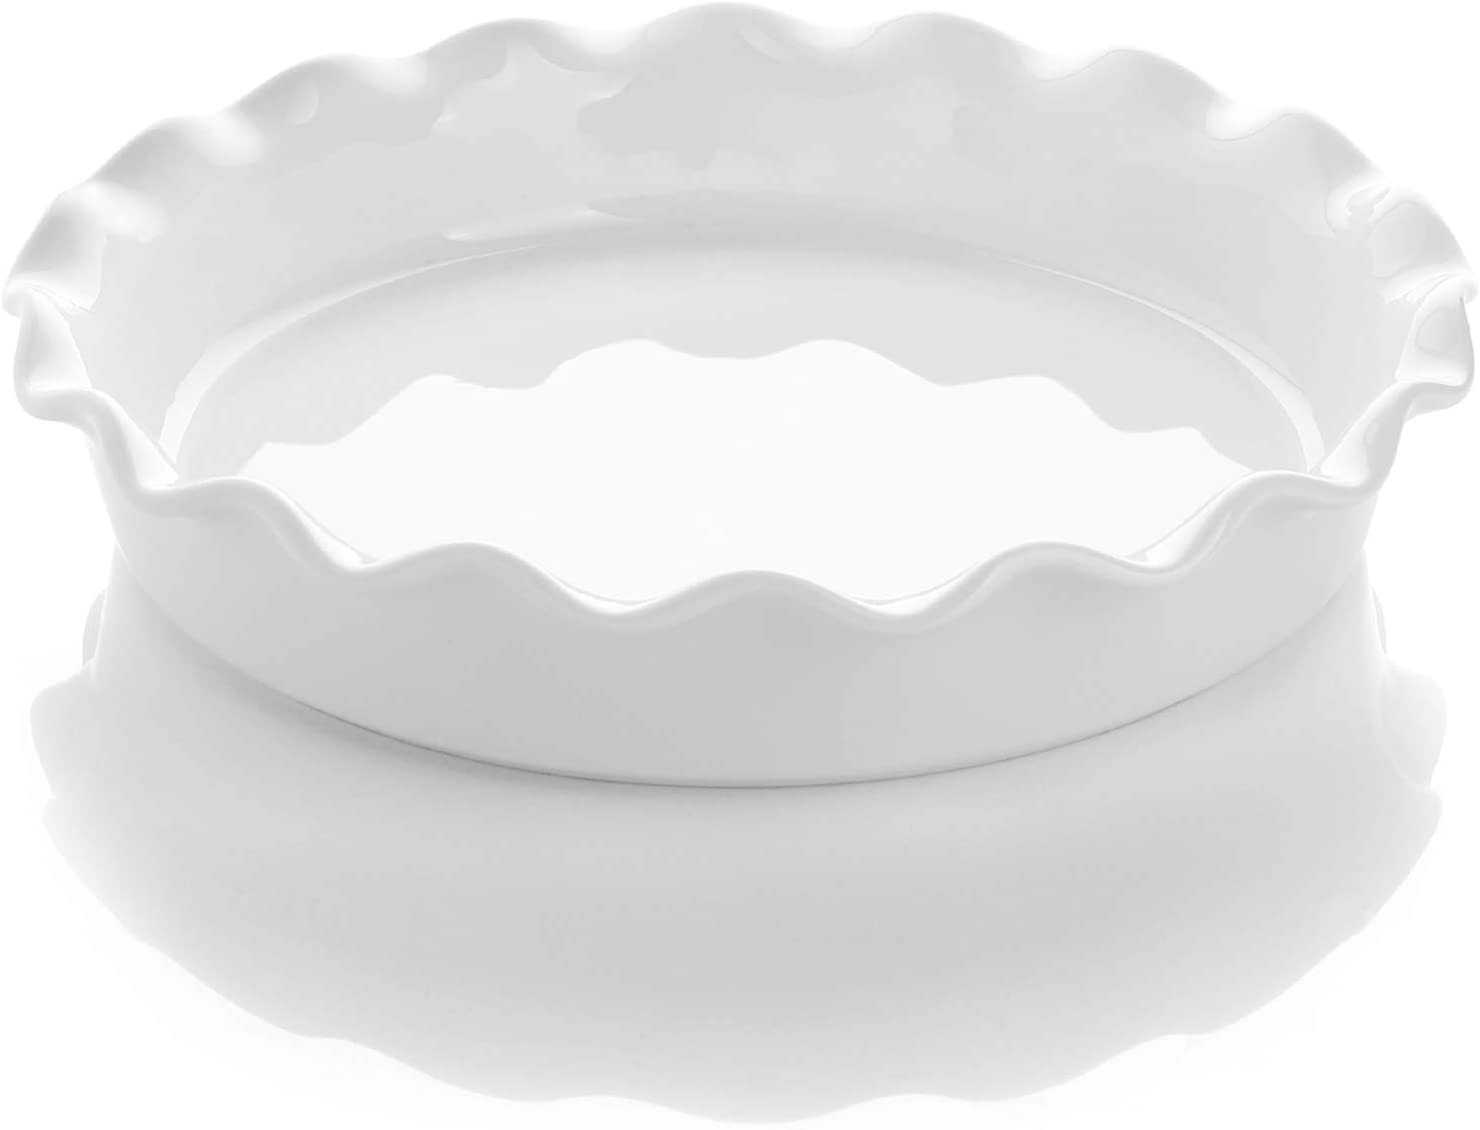 Sweese 518.101 Porcelain Ranking Max 48% OFF TOP19 Pie Pan Round wi Plate Baking Dish